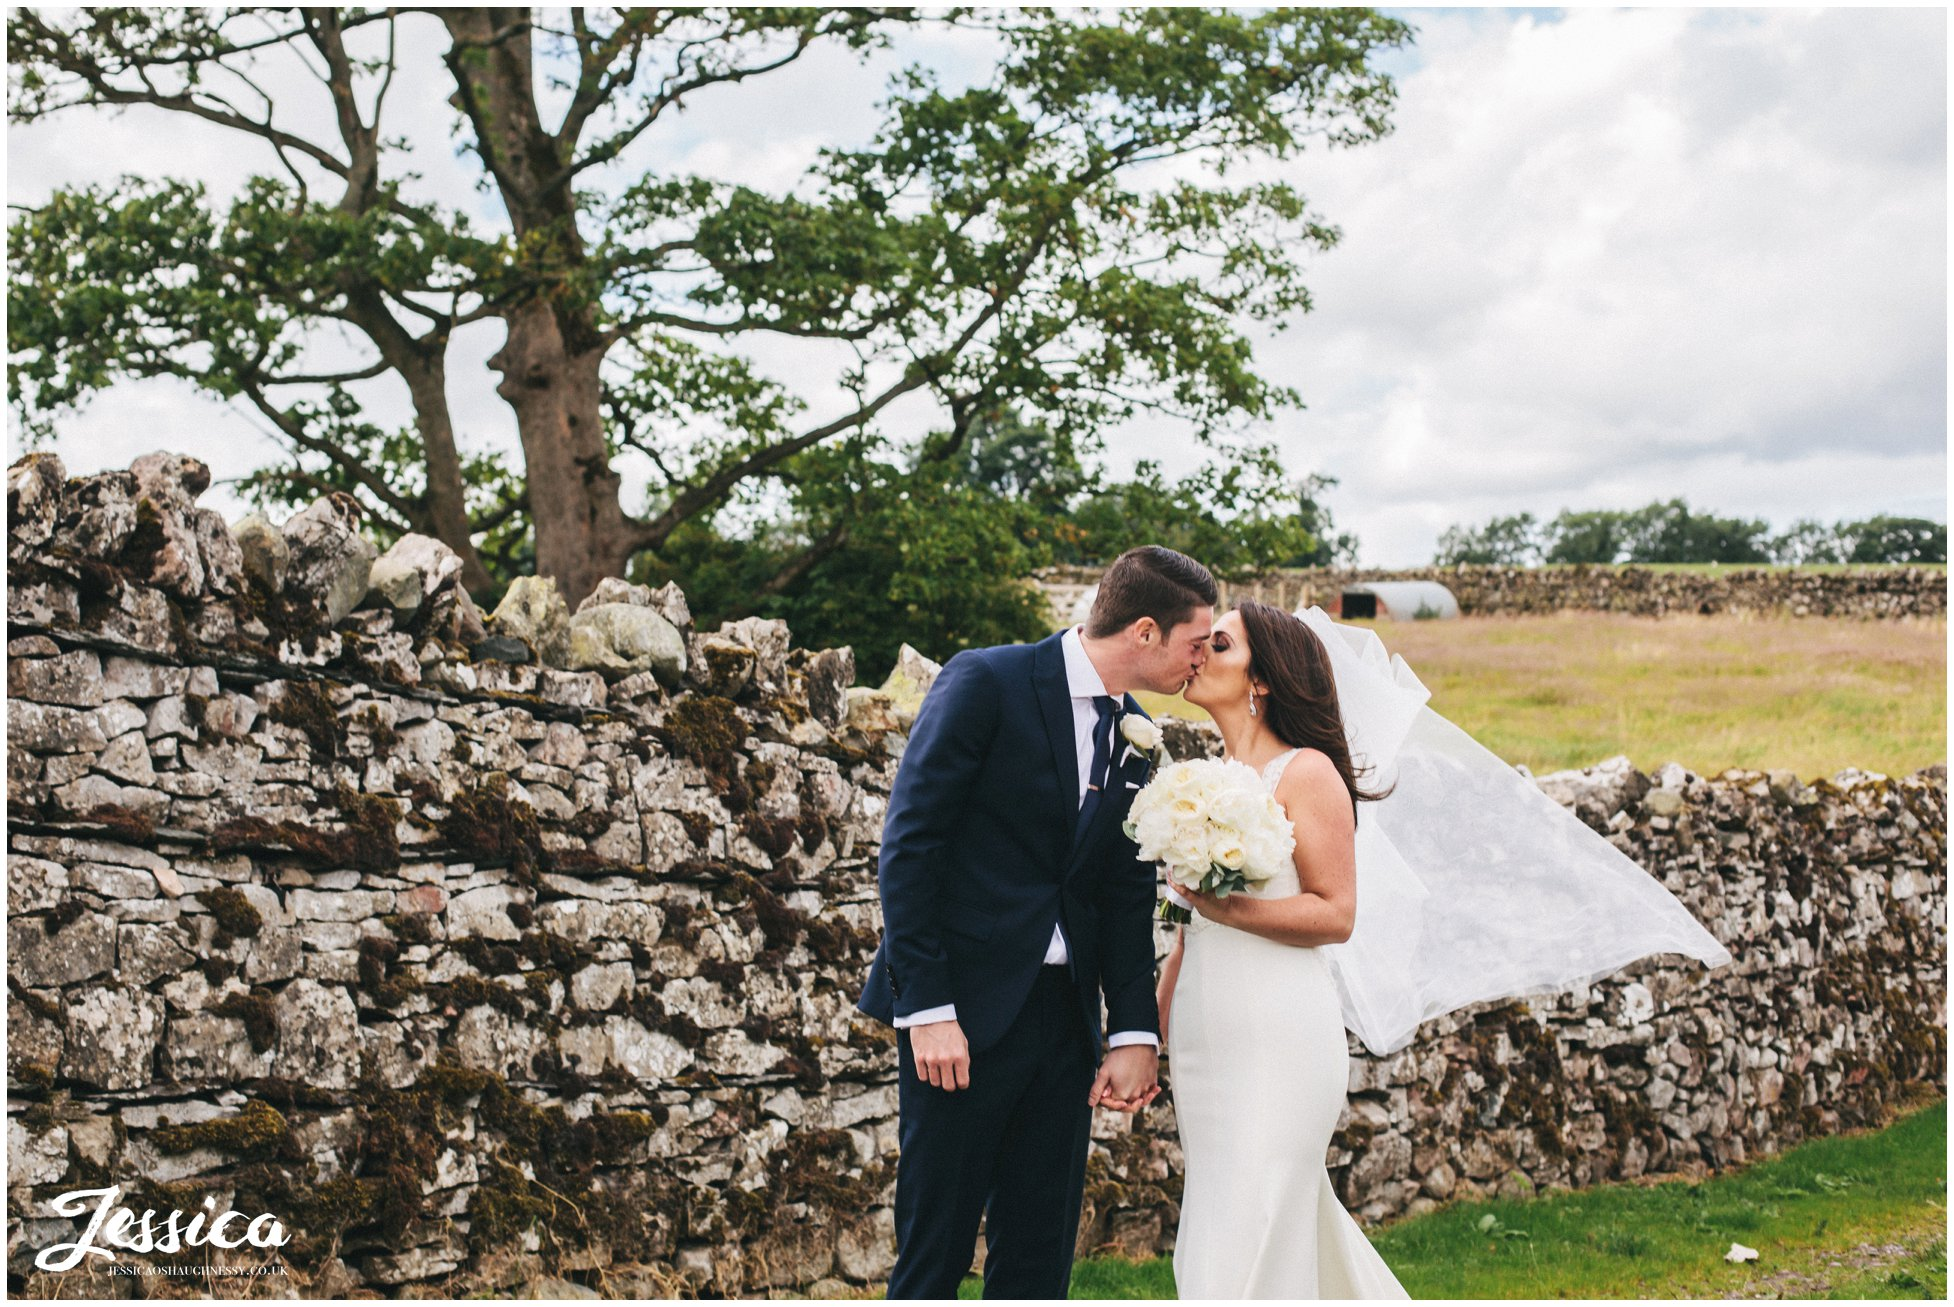 newly wed's share kiss in front of stone wall after their wedding at askham hall in the lake district